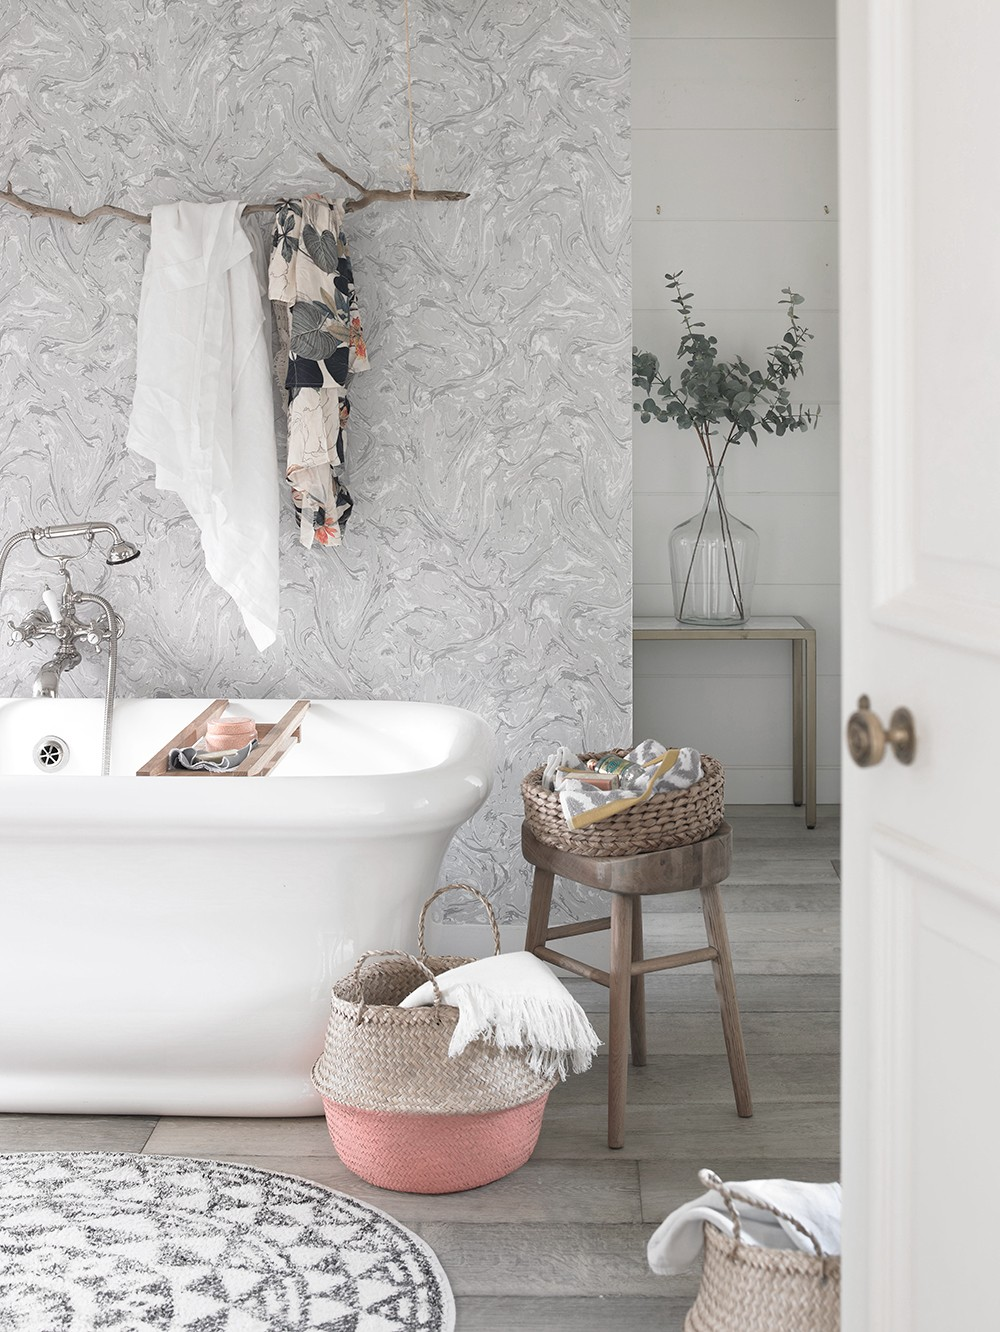 Marble effect wallpaper in the bathroom combined with soft coral accessories and a round bath mat. Shot for Country Homes & Interiors, styled by Pippa Jameson and photographed by David Britton